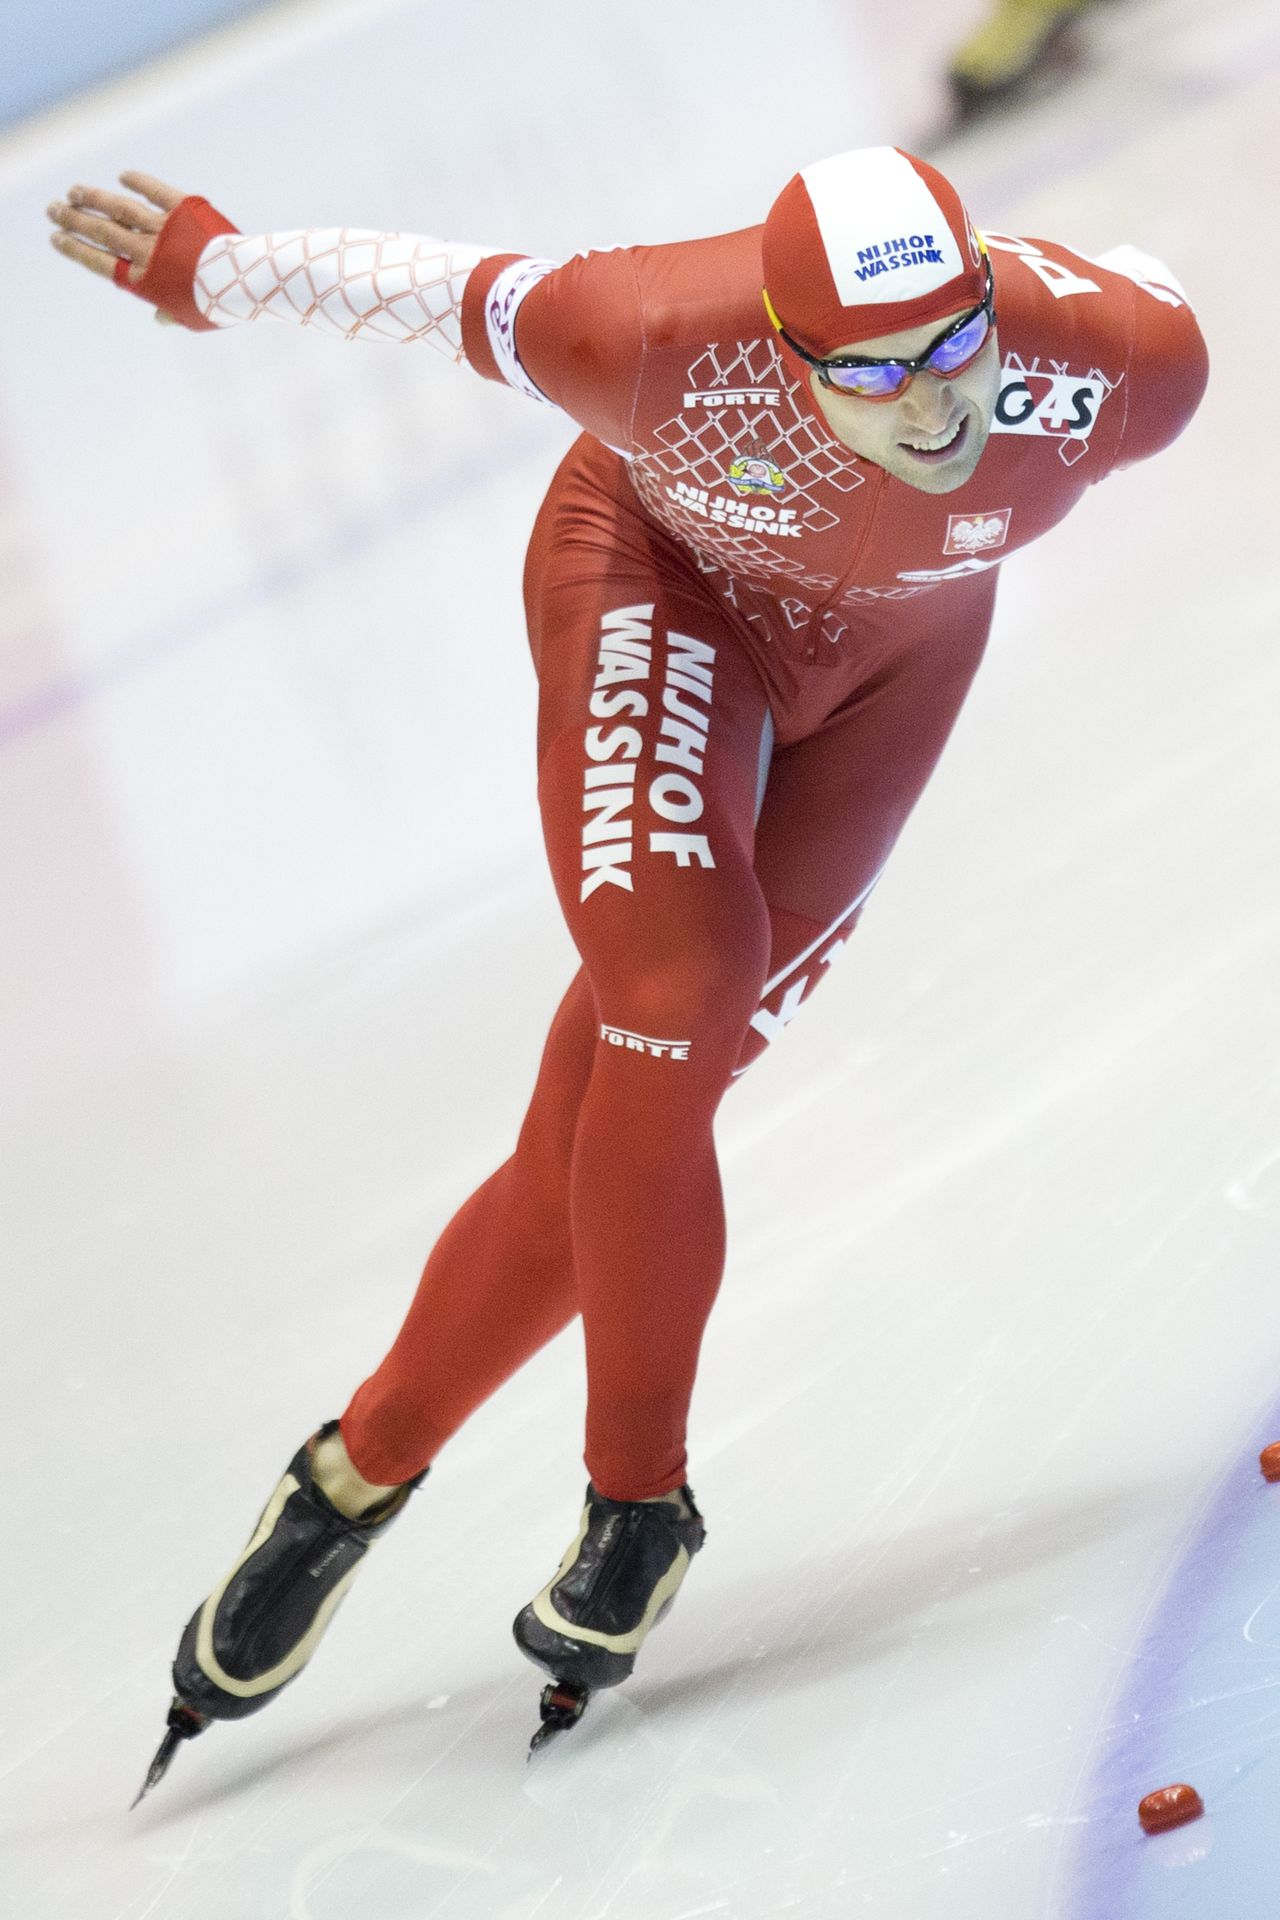 Zbigniew Brodka competes during the men's 1500 meters race of the ISU European Championships Speed Skating Allround at Thialf stadium in Heerenveen, northern Netherlands, Saturday, Jan. 12, 2013. (AP Photo/Peter Dejong)